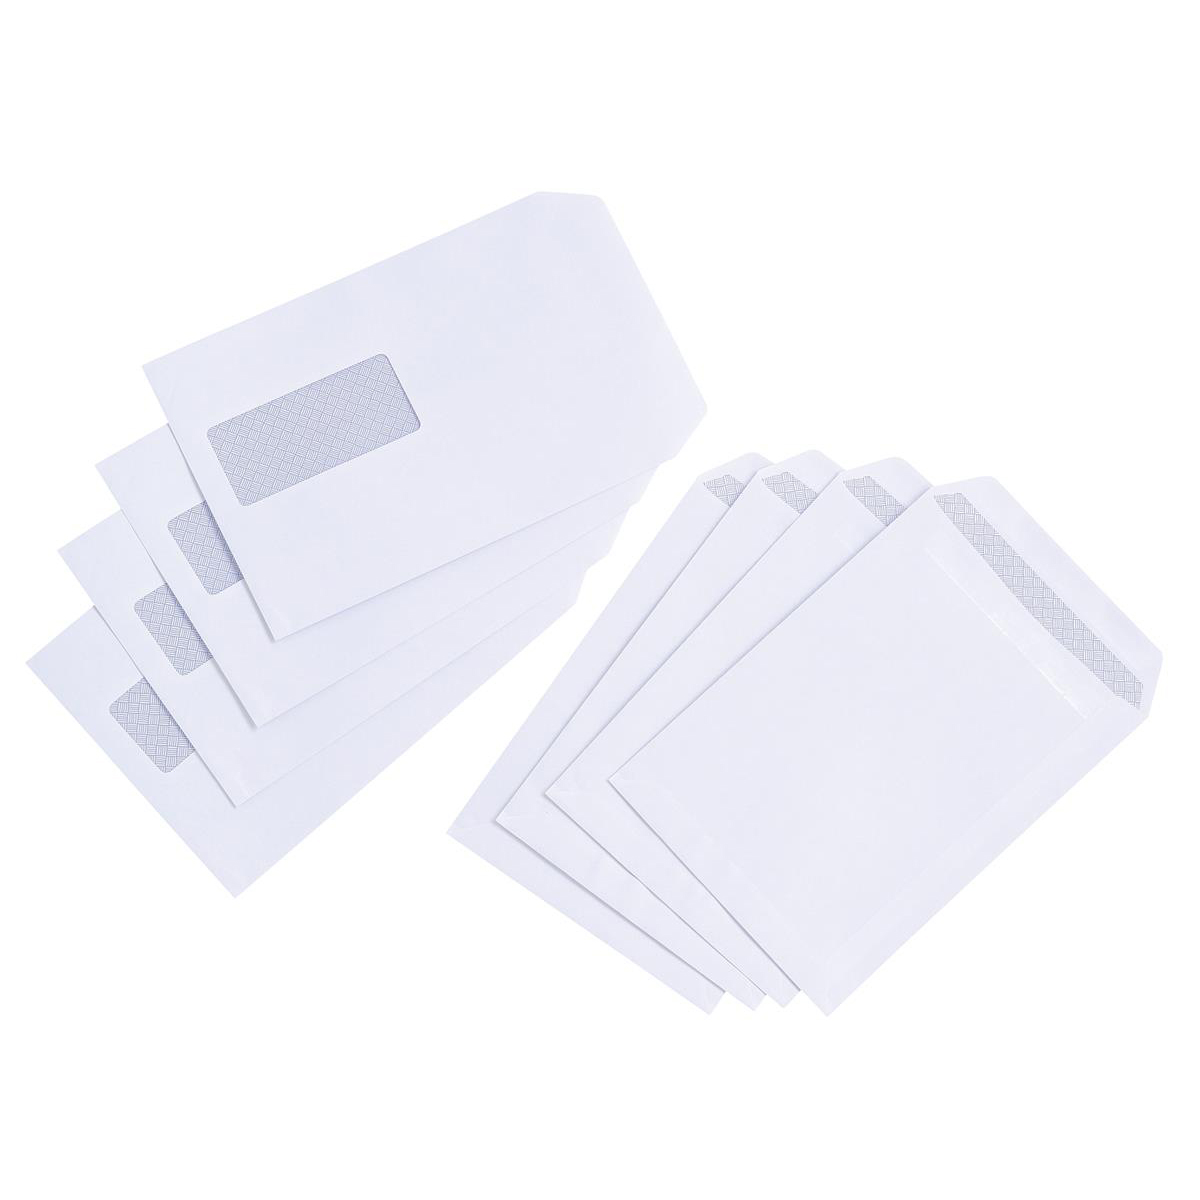 5 Star Value Envelopes Pocket Press Seal Window 90gsm C5 229x162mm White Pack 500